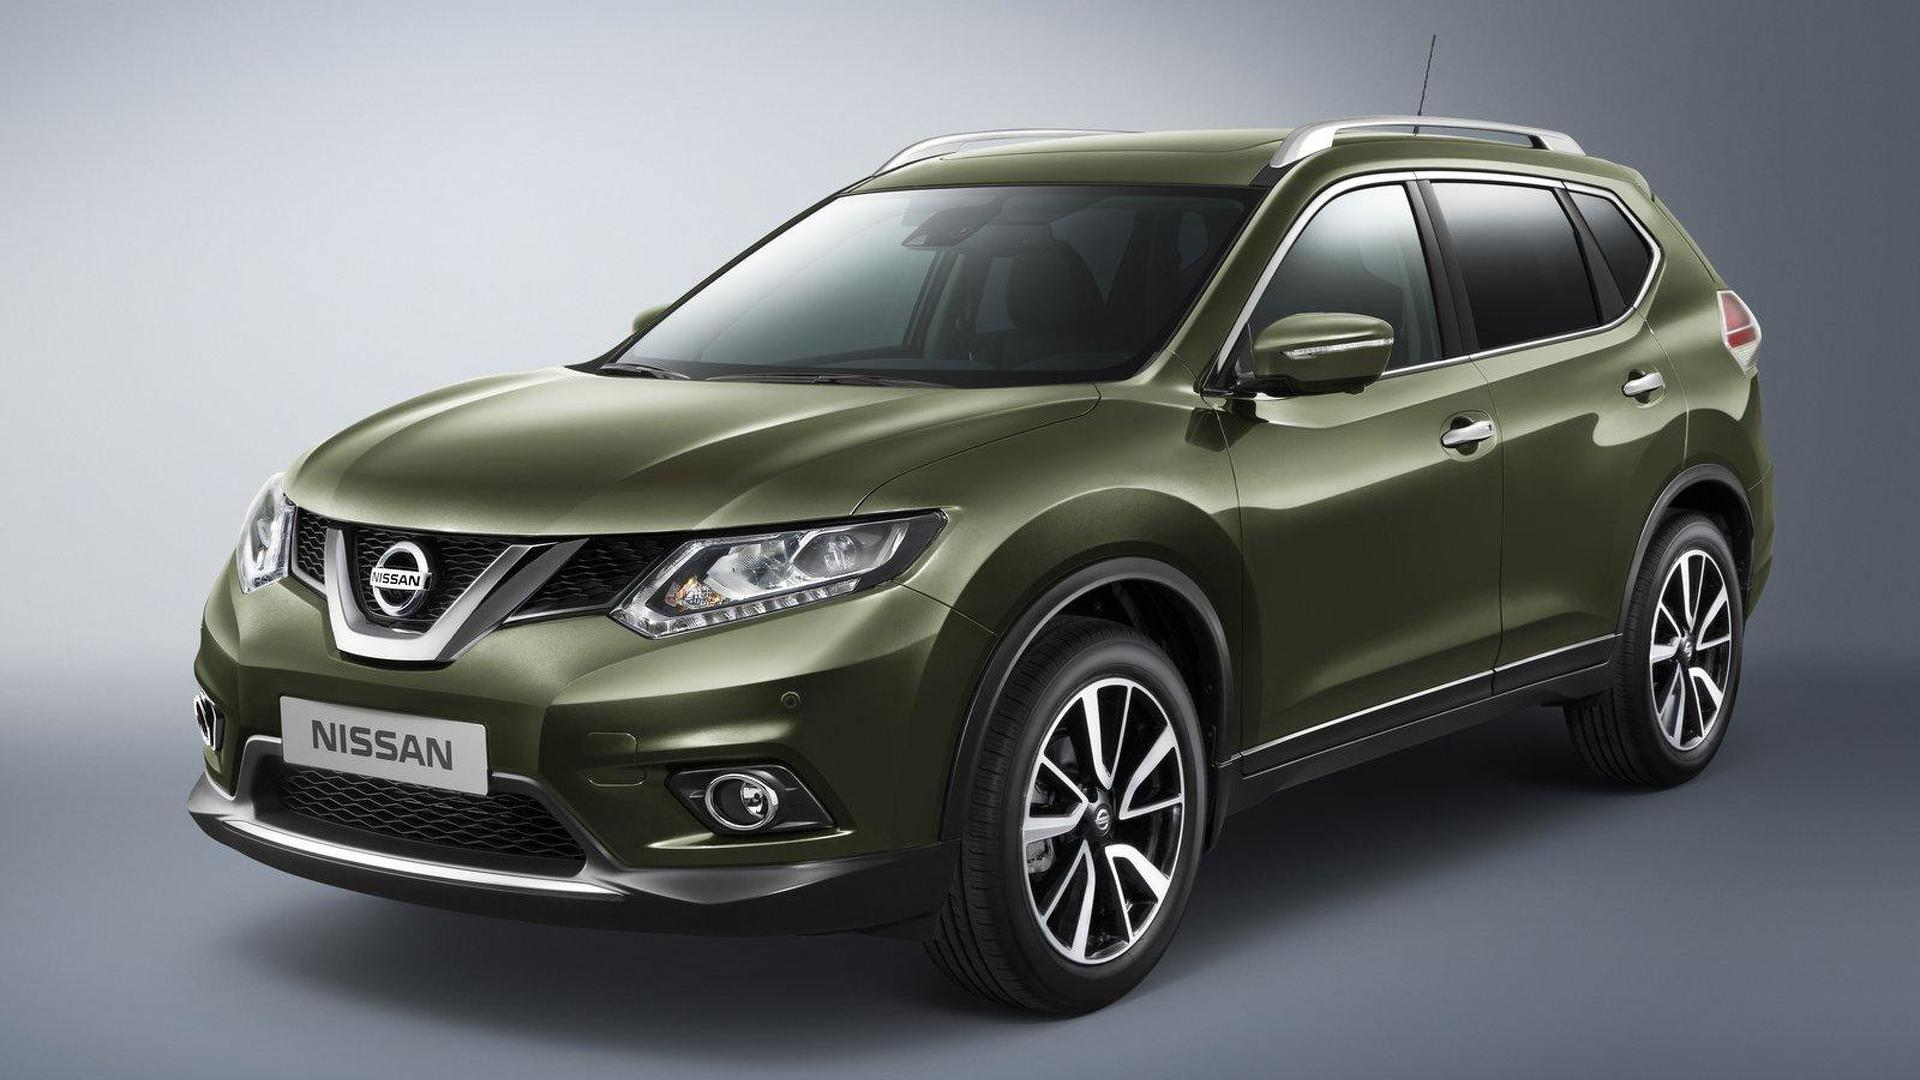 Crossovers & SUVs overtake sedans in popularity for the first time